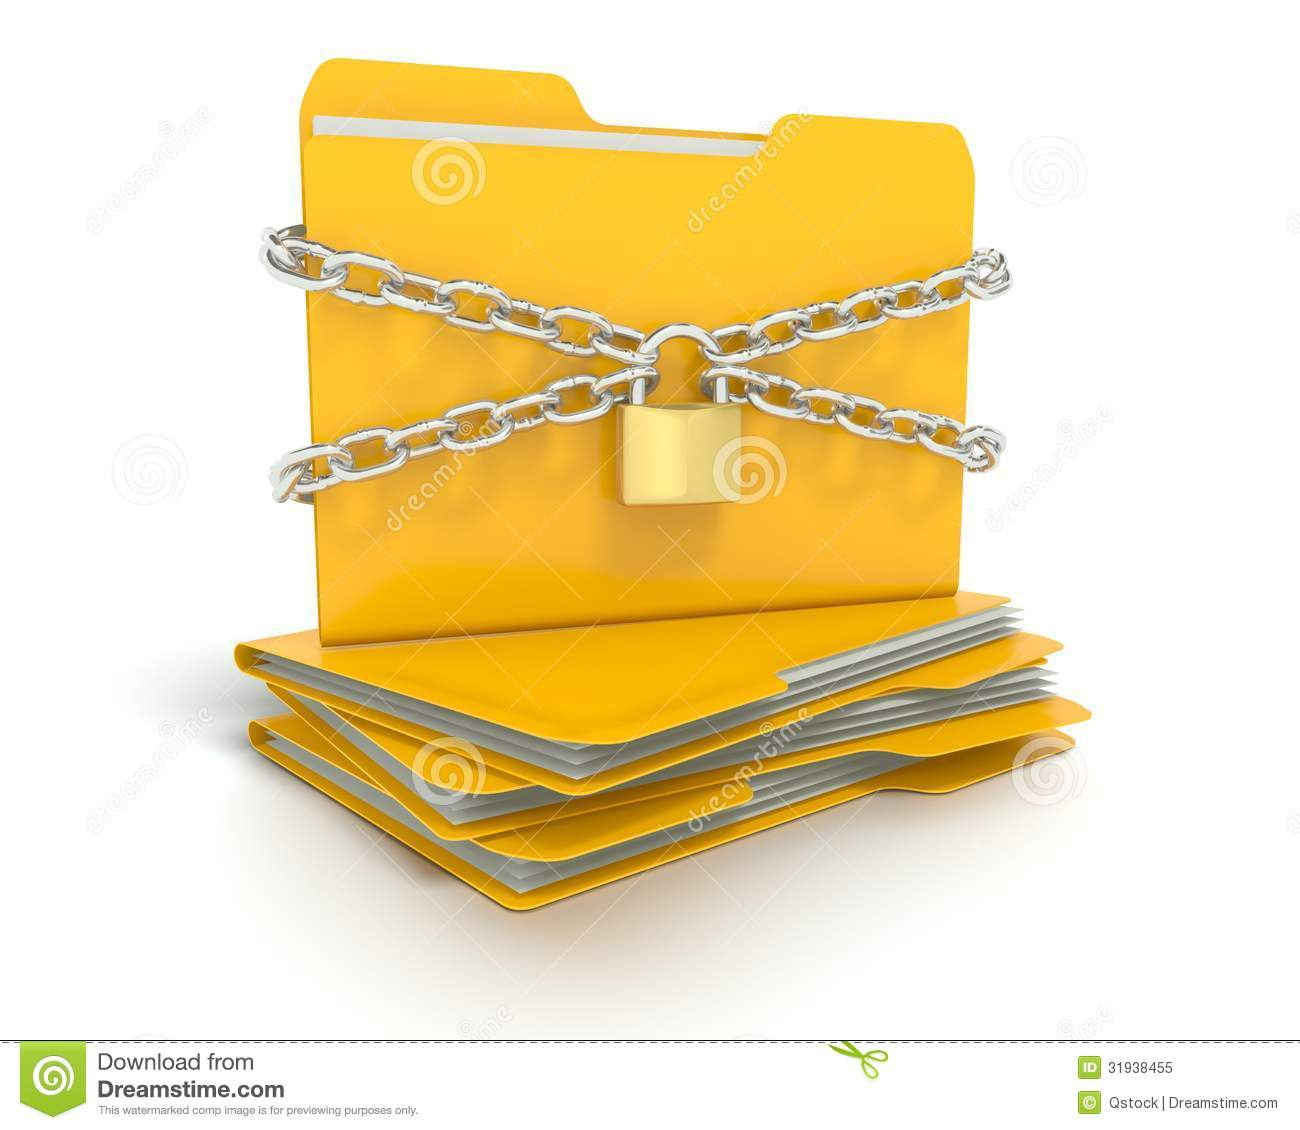 Security Lock And Chains With A Folder Stock Illustration